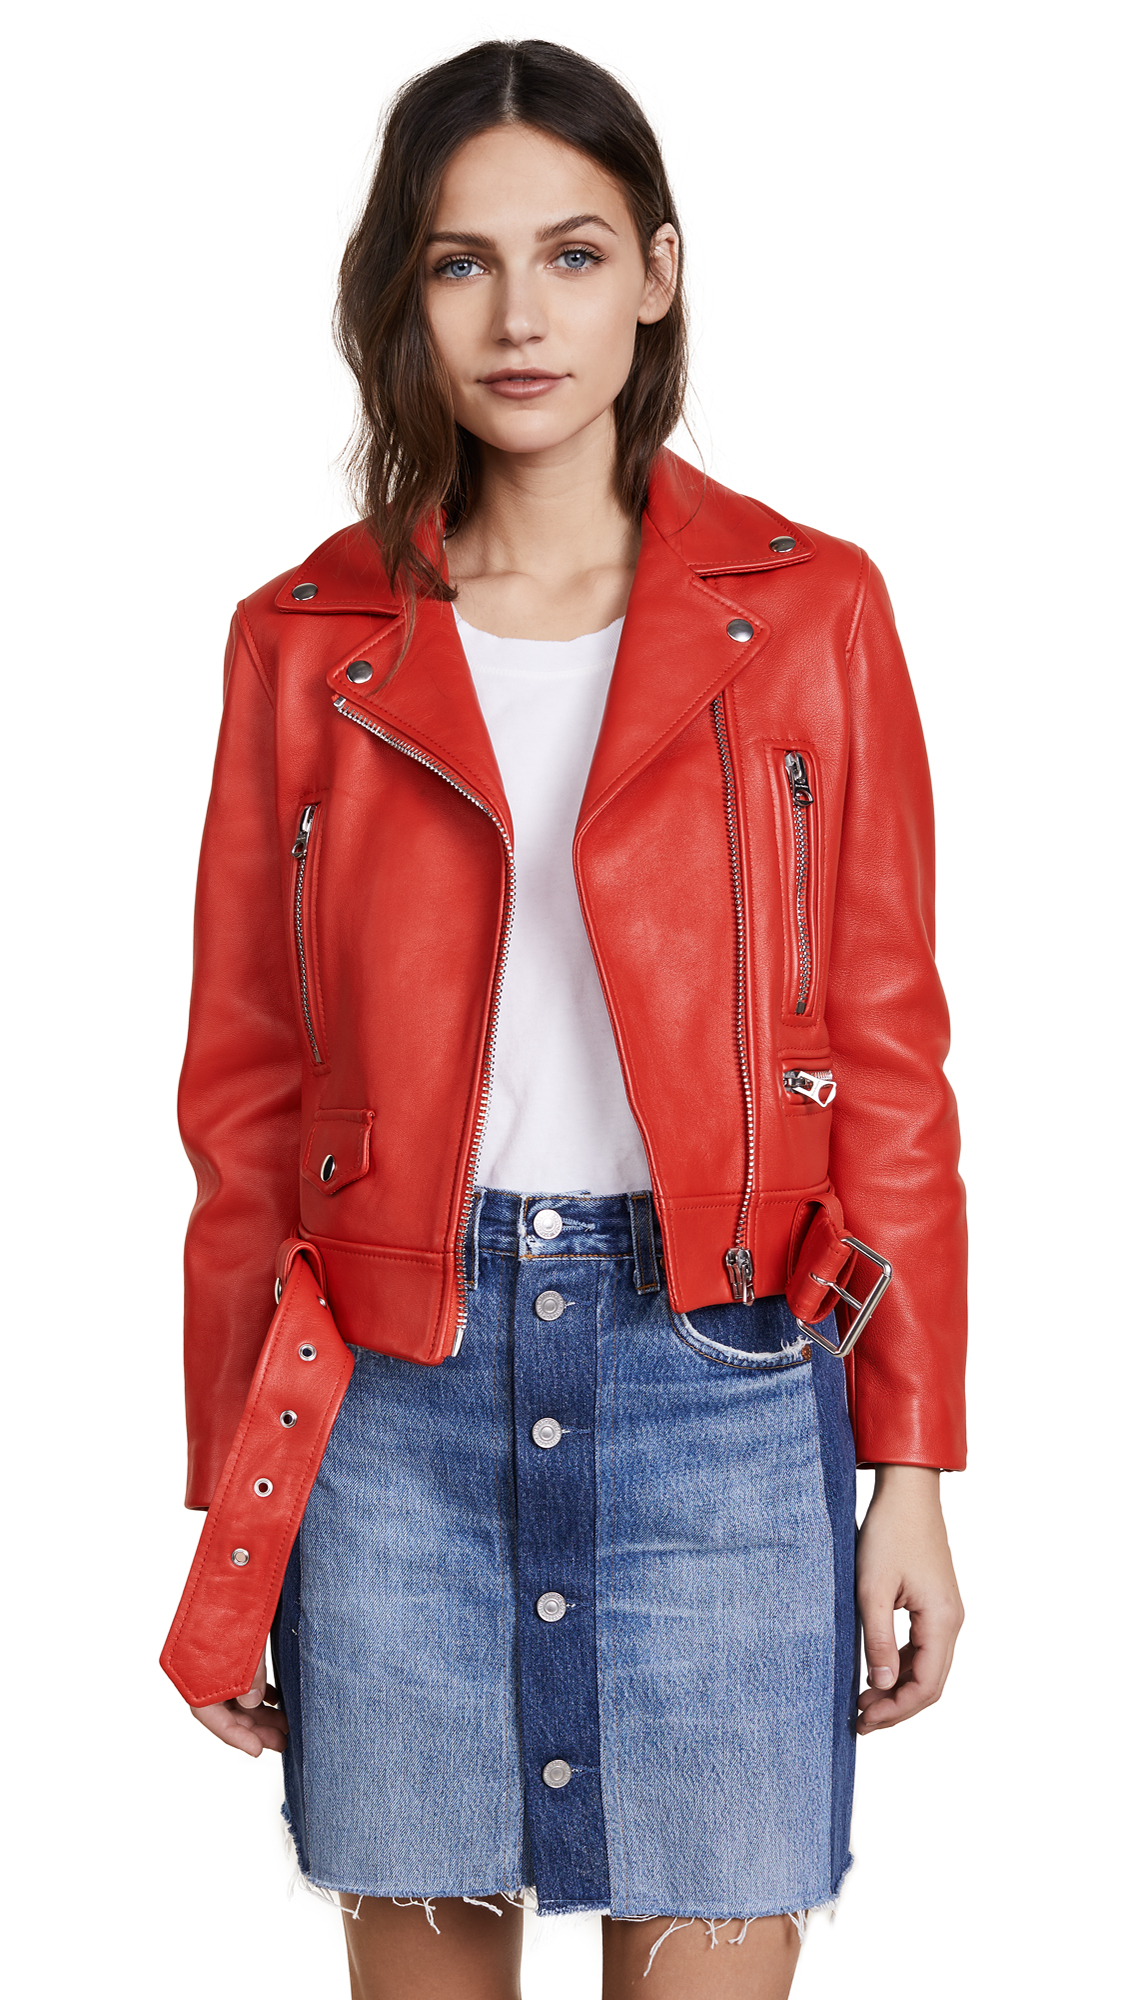 Acne Studios Leather Jacket - Red